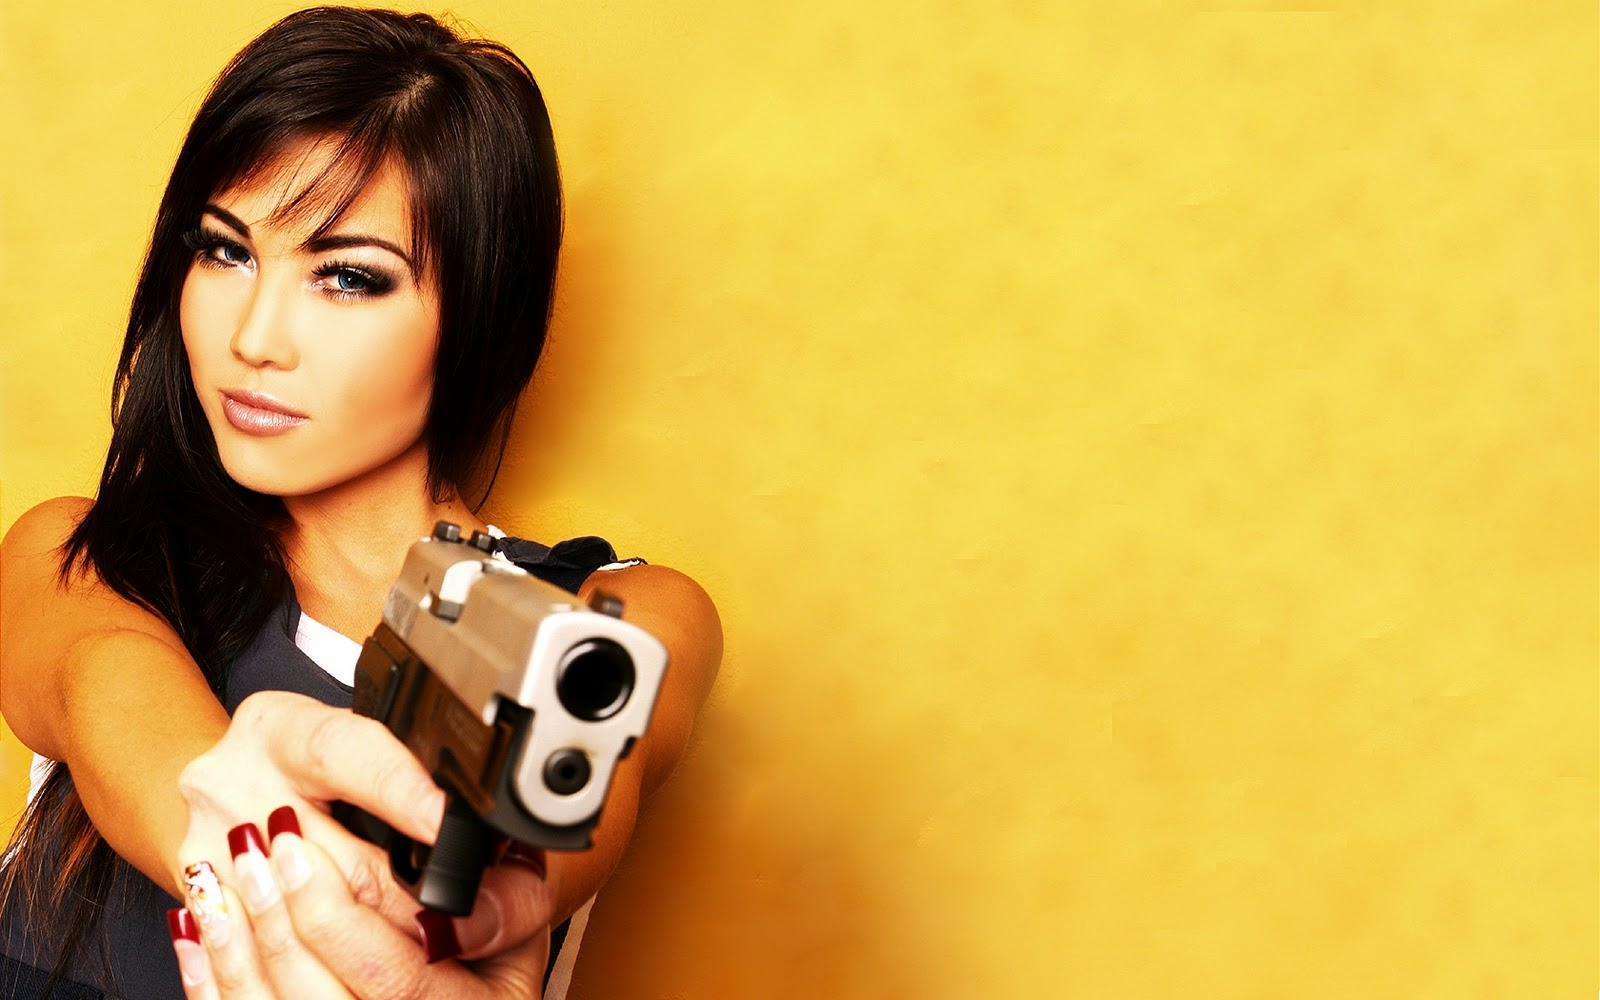 Wallpaper free download guns wallpapers gun wallpaper beautiful girls with gunz hot gun pic with girls voltagebd Gallery